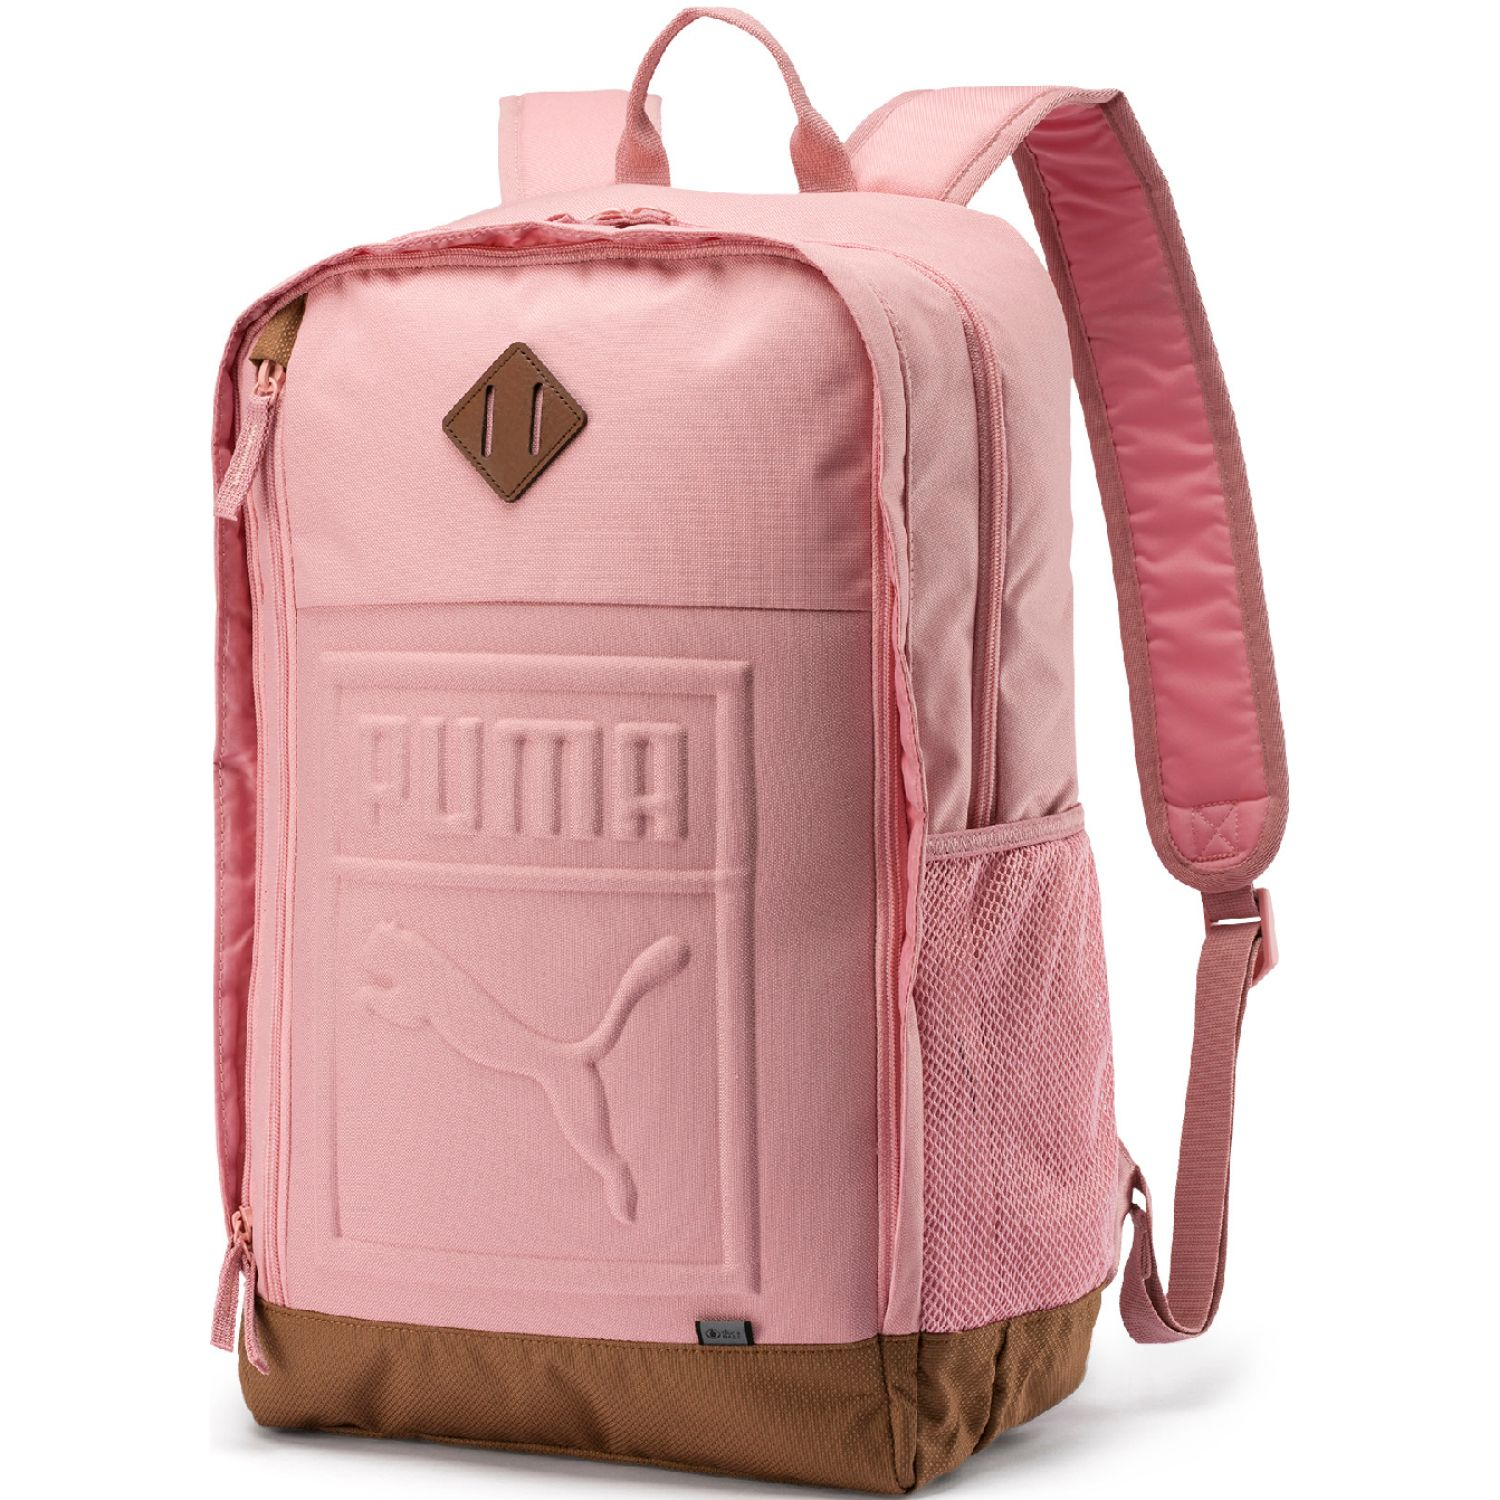 Puma puma s backpack Rosado Mochilas Multipropósitos